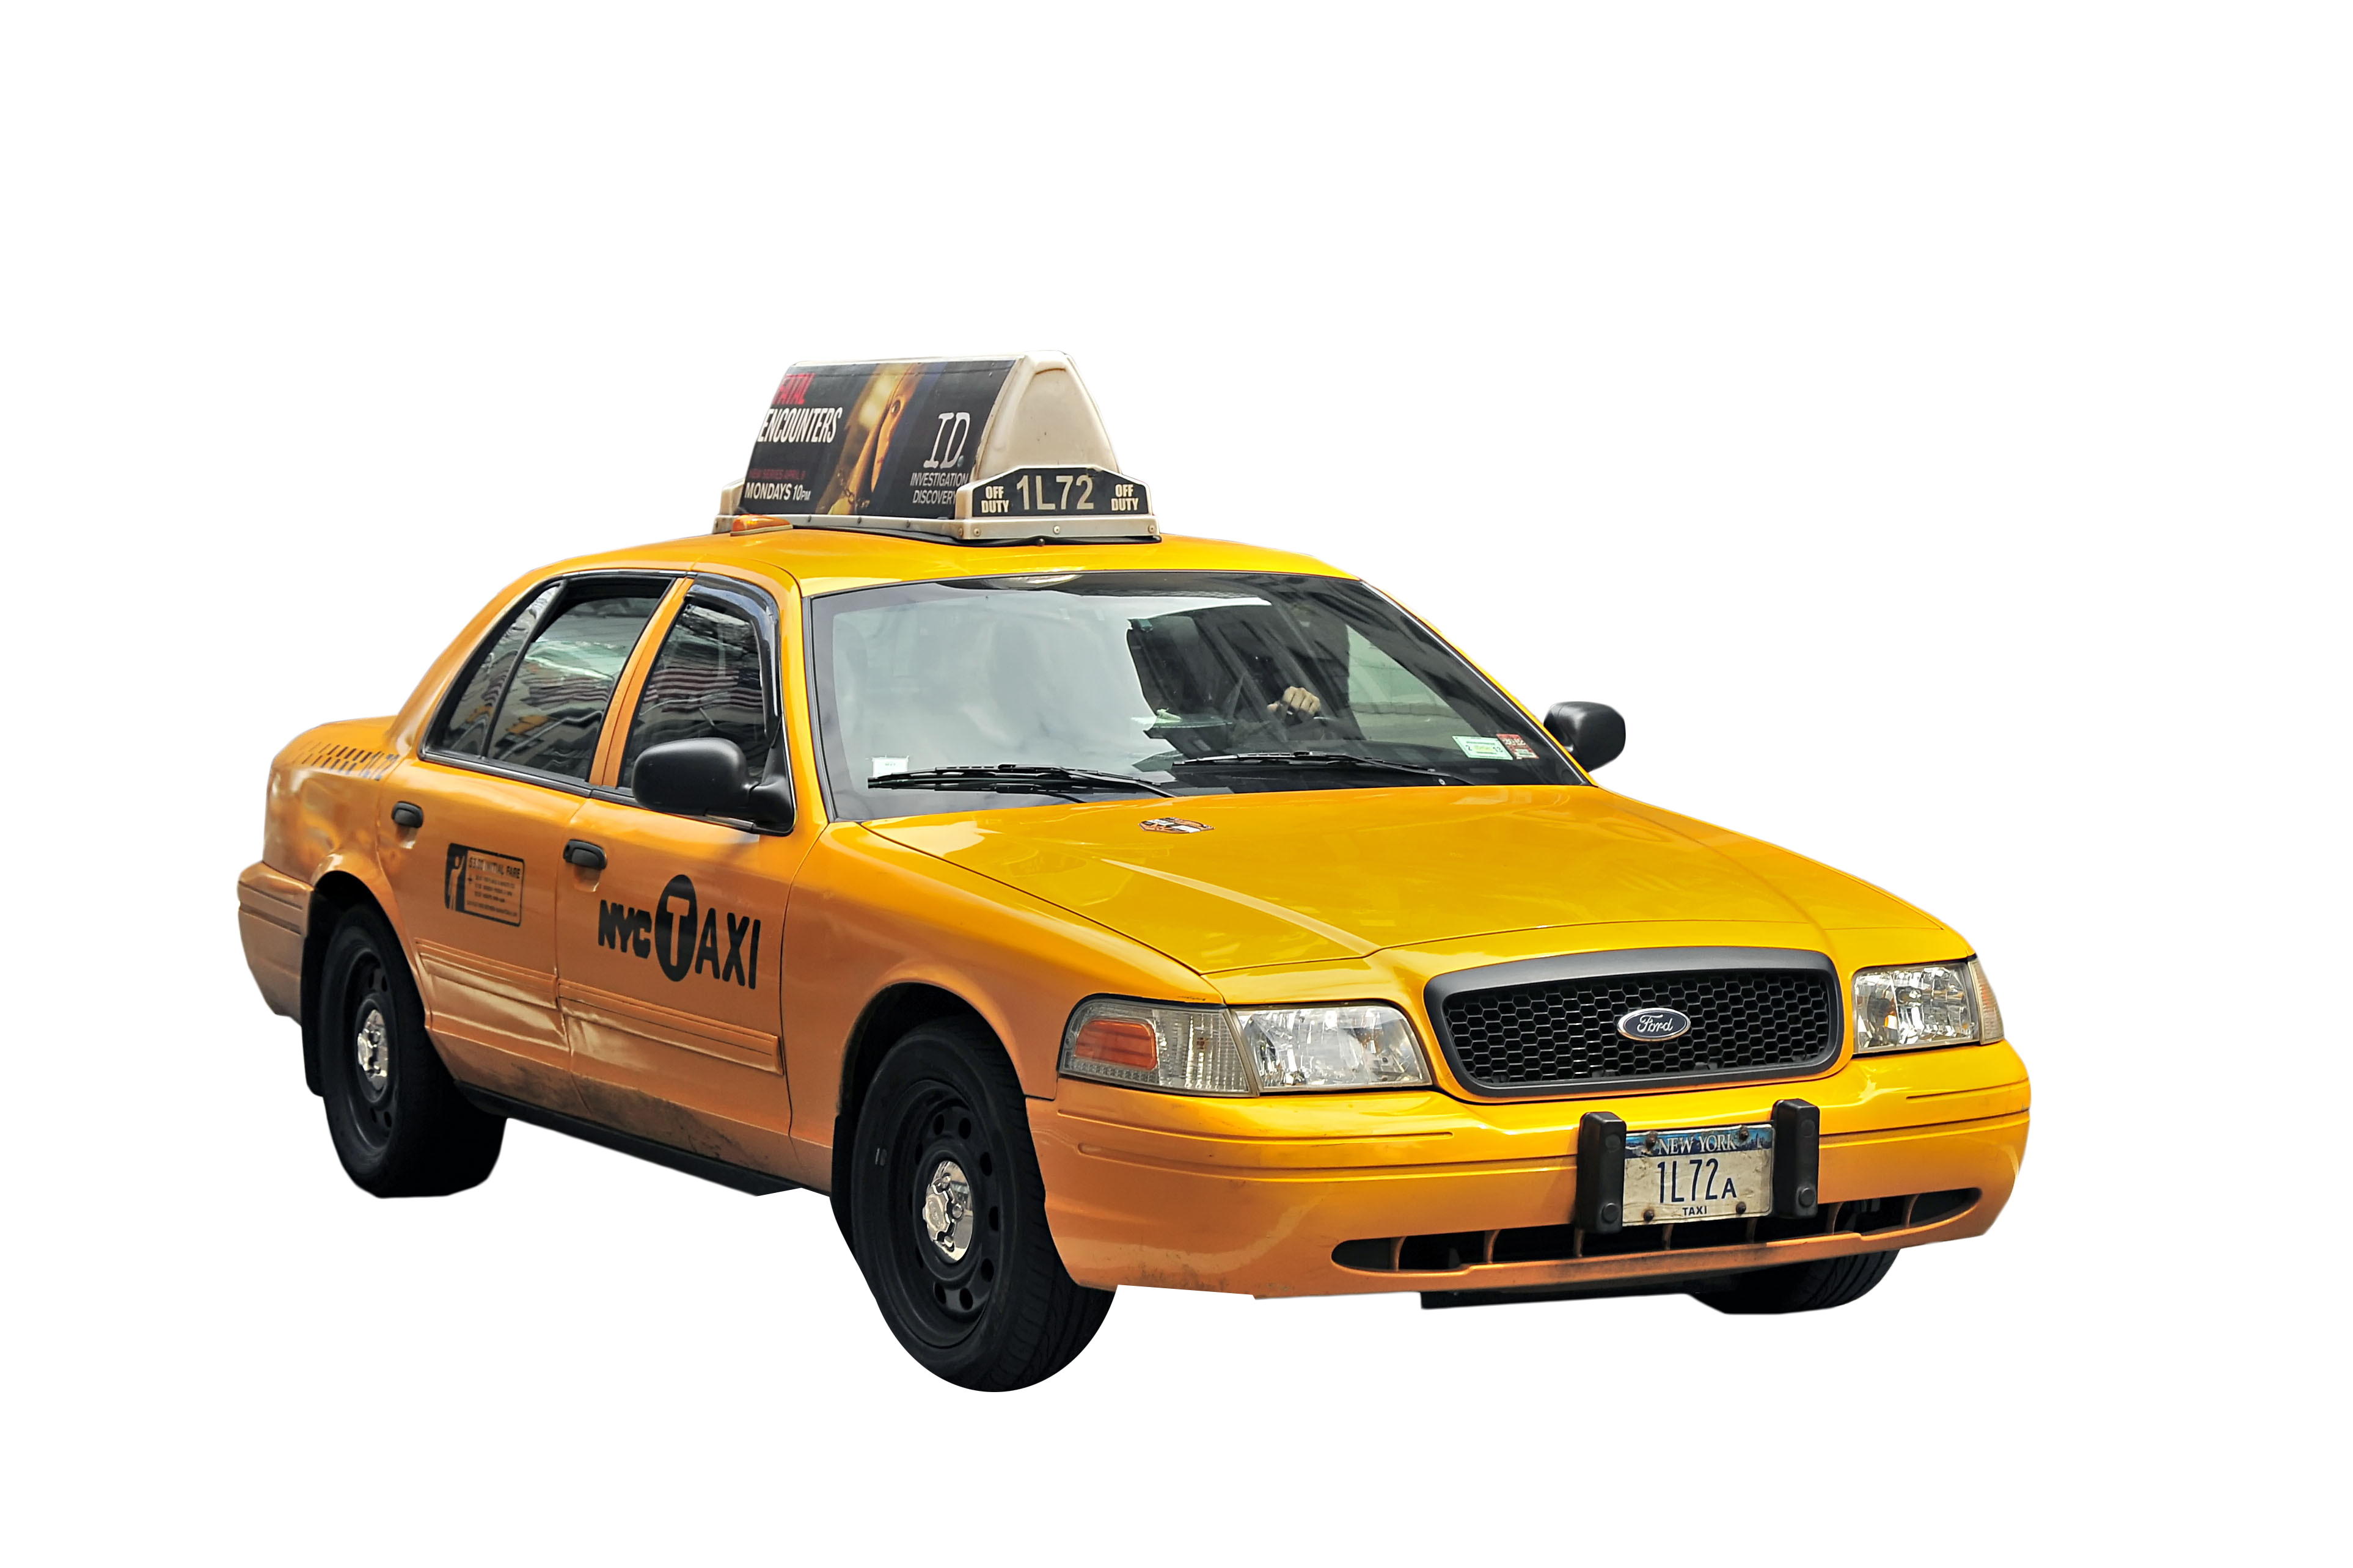 1995er Ford Crown Victoria New York Taxi Png Image New York Taxi Taxi New York